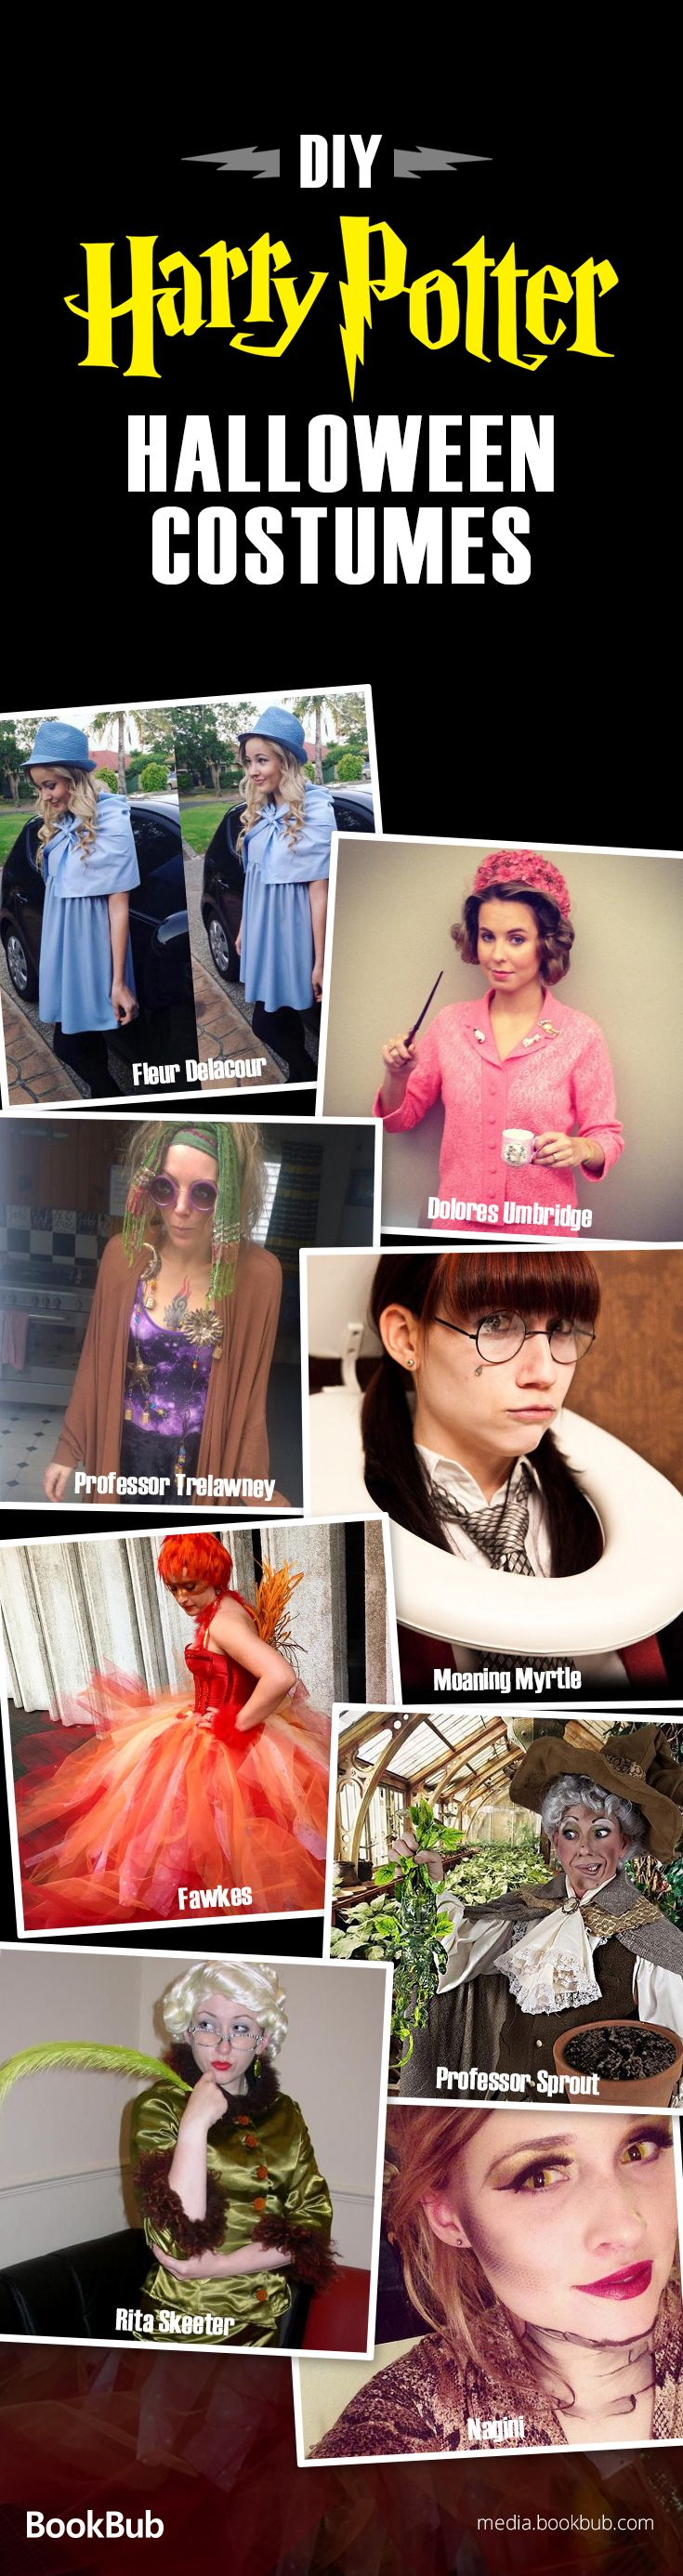 Harry Potter Halloween Costumes Every Potterhead Needs To See - 28 awesome halloween costumes couples